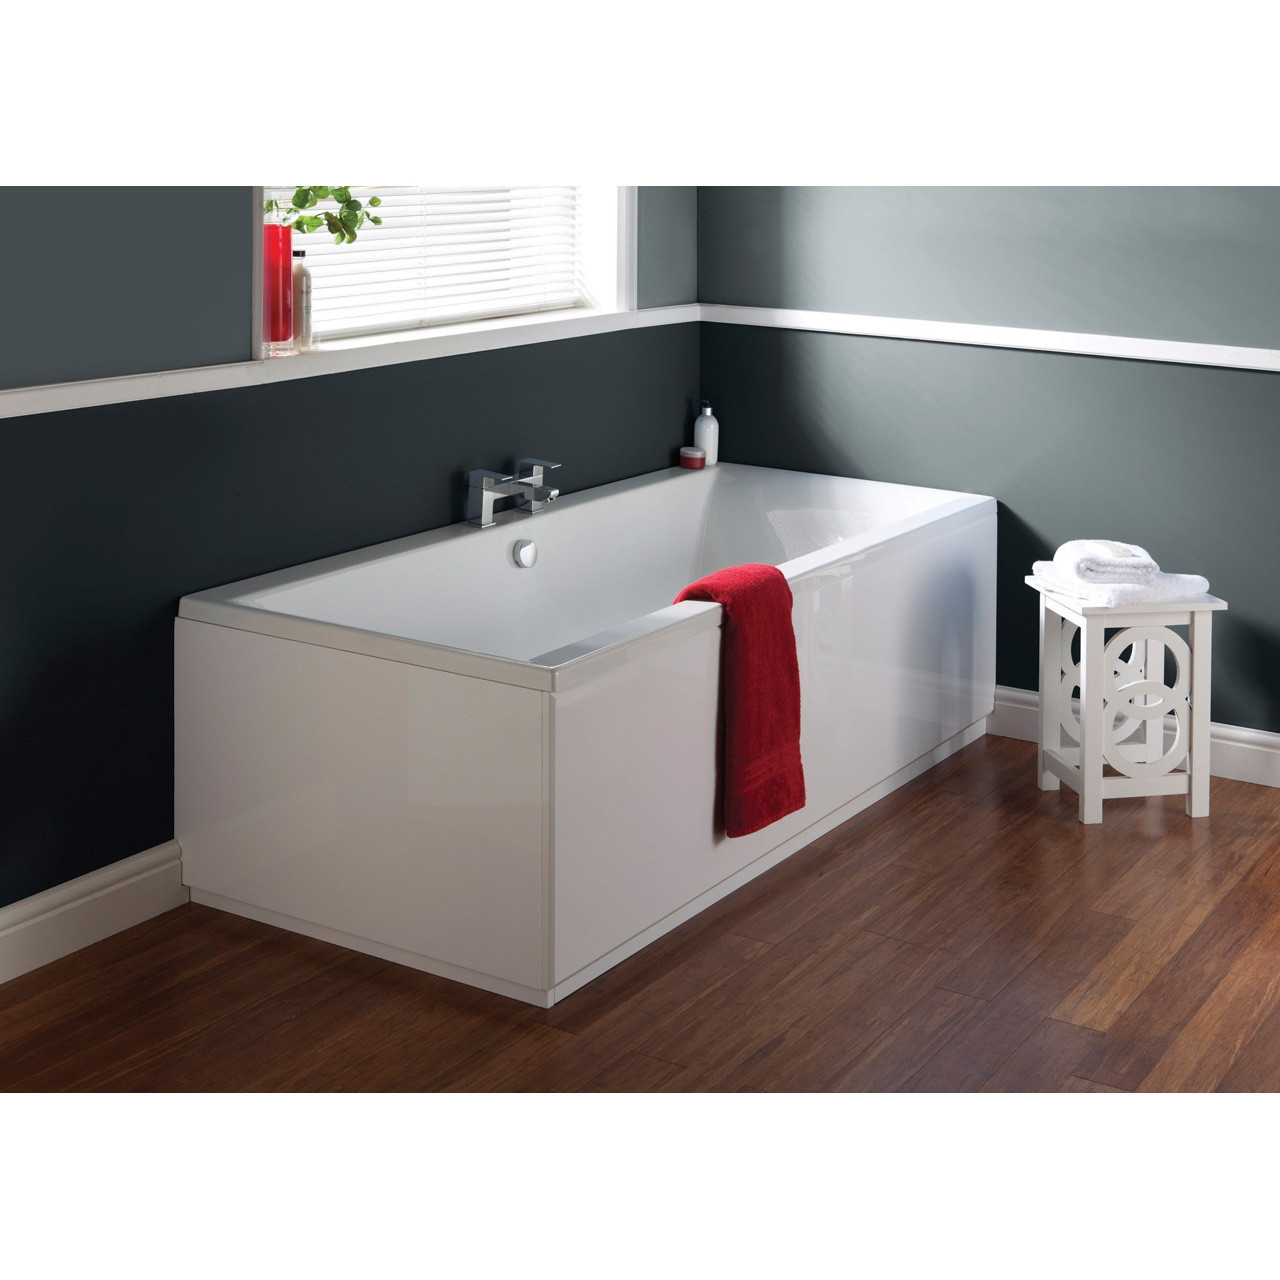 Premier Square Double Ended Bath and Leg Set 1700mm x 750mm - BDE007